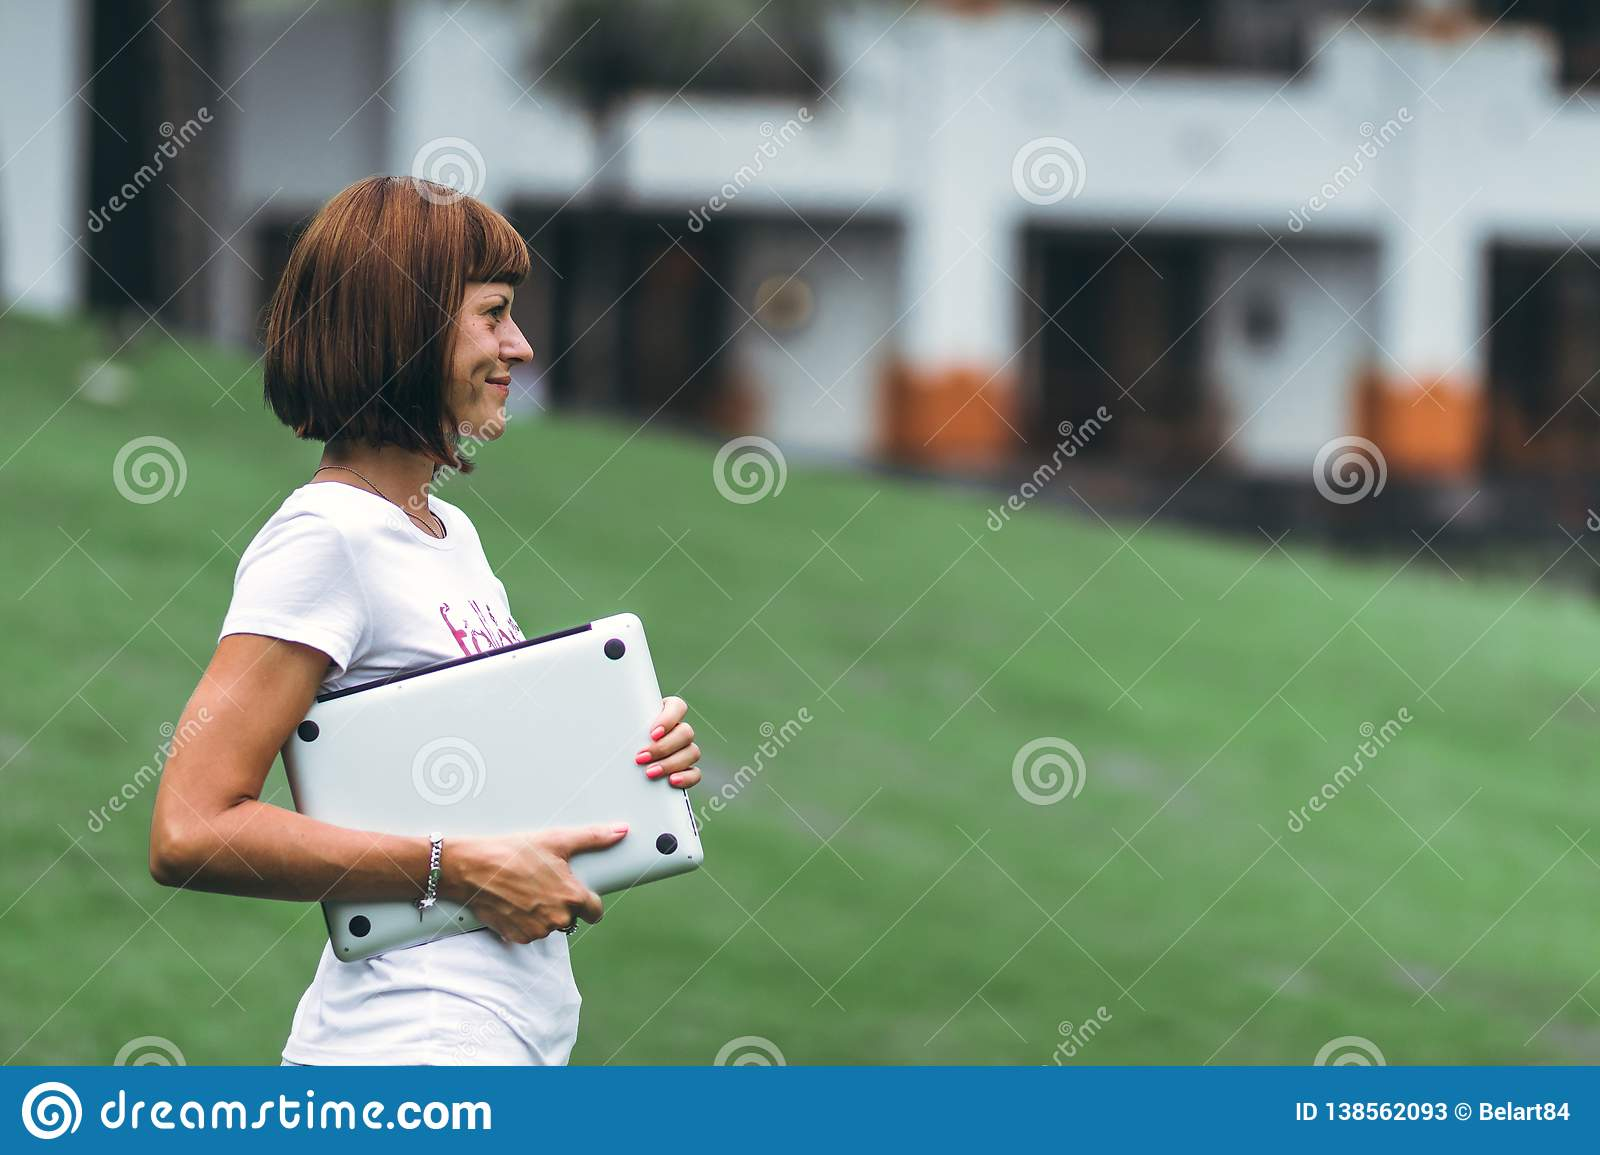 Woman Online Shopping Concept Woman In The Green Park With